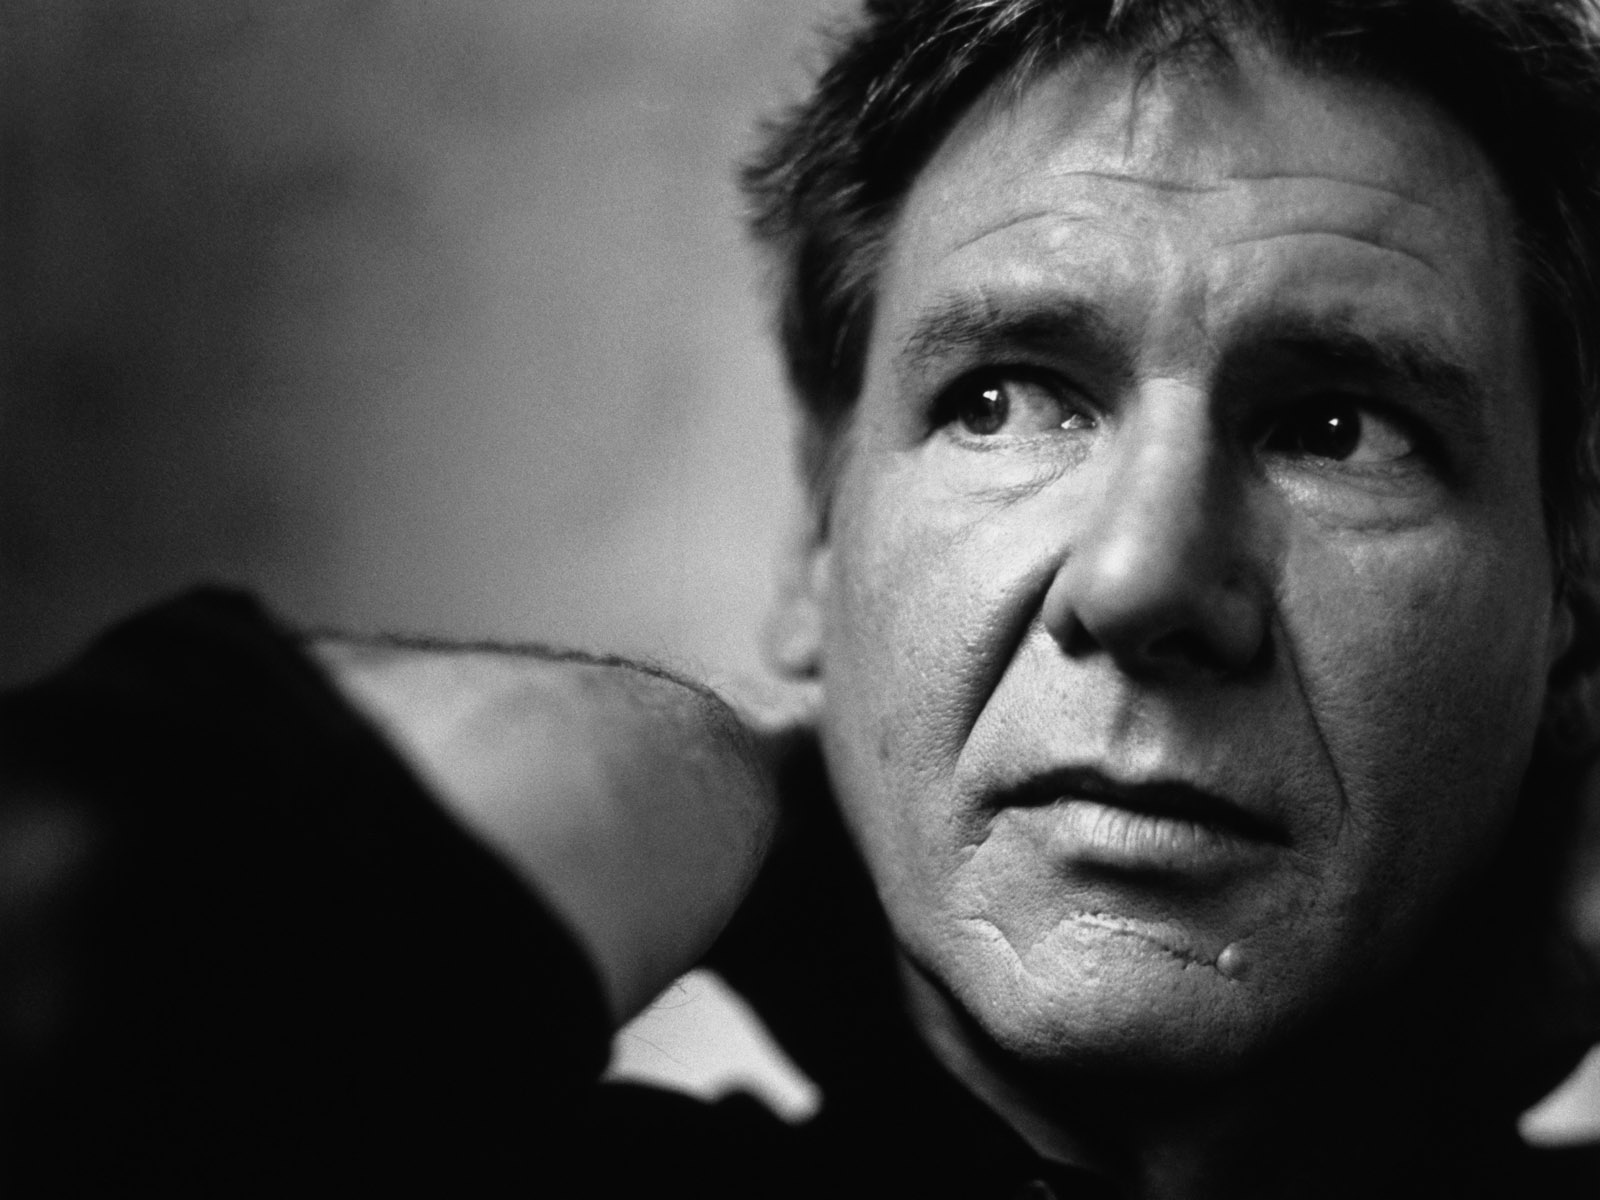 Harrison Ford Wallpapers High Resolution and Quality Download